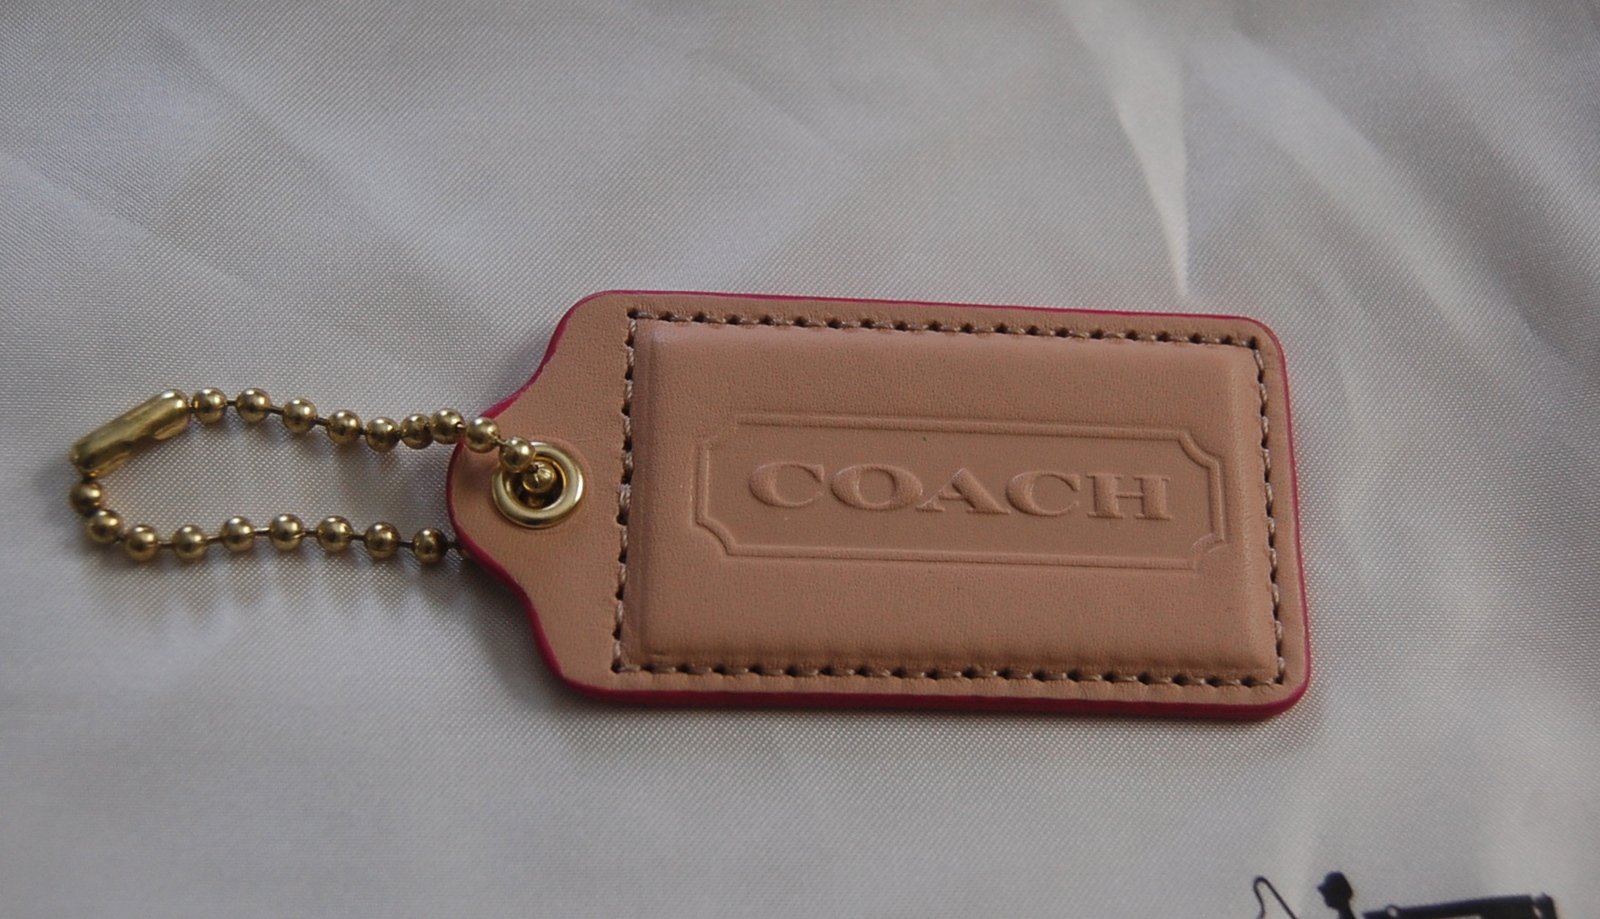 COACH Large Vachetta Leather Hangtag with Fuchsia Edging ~NEW~